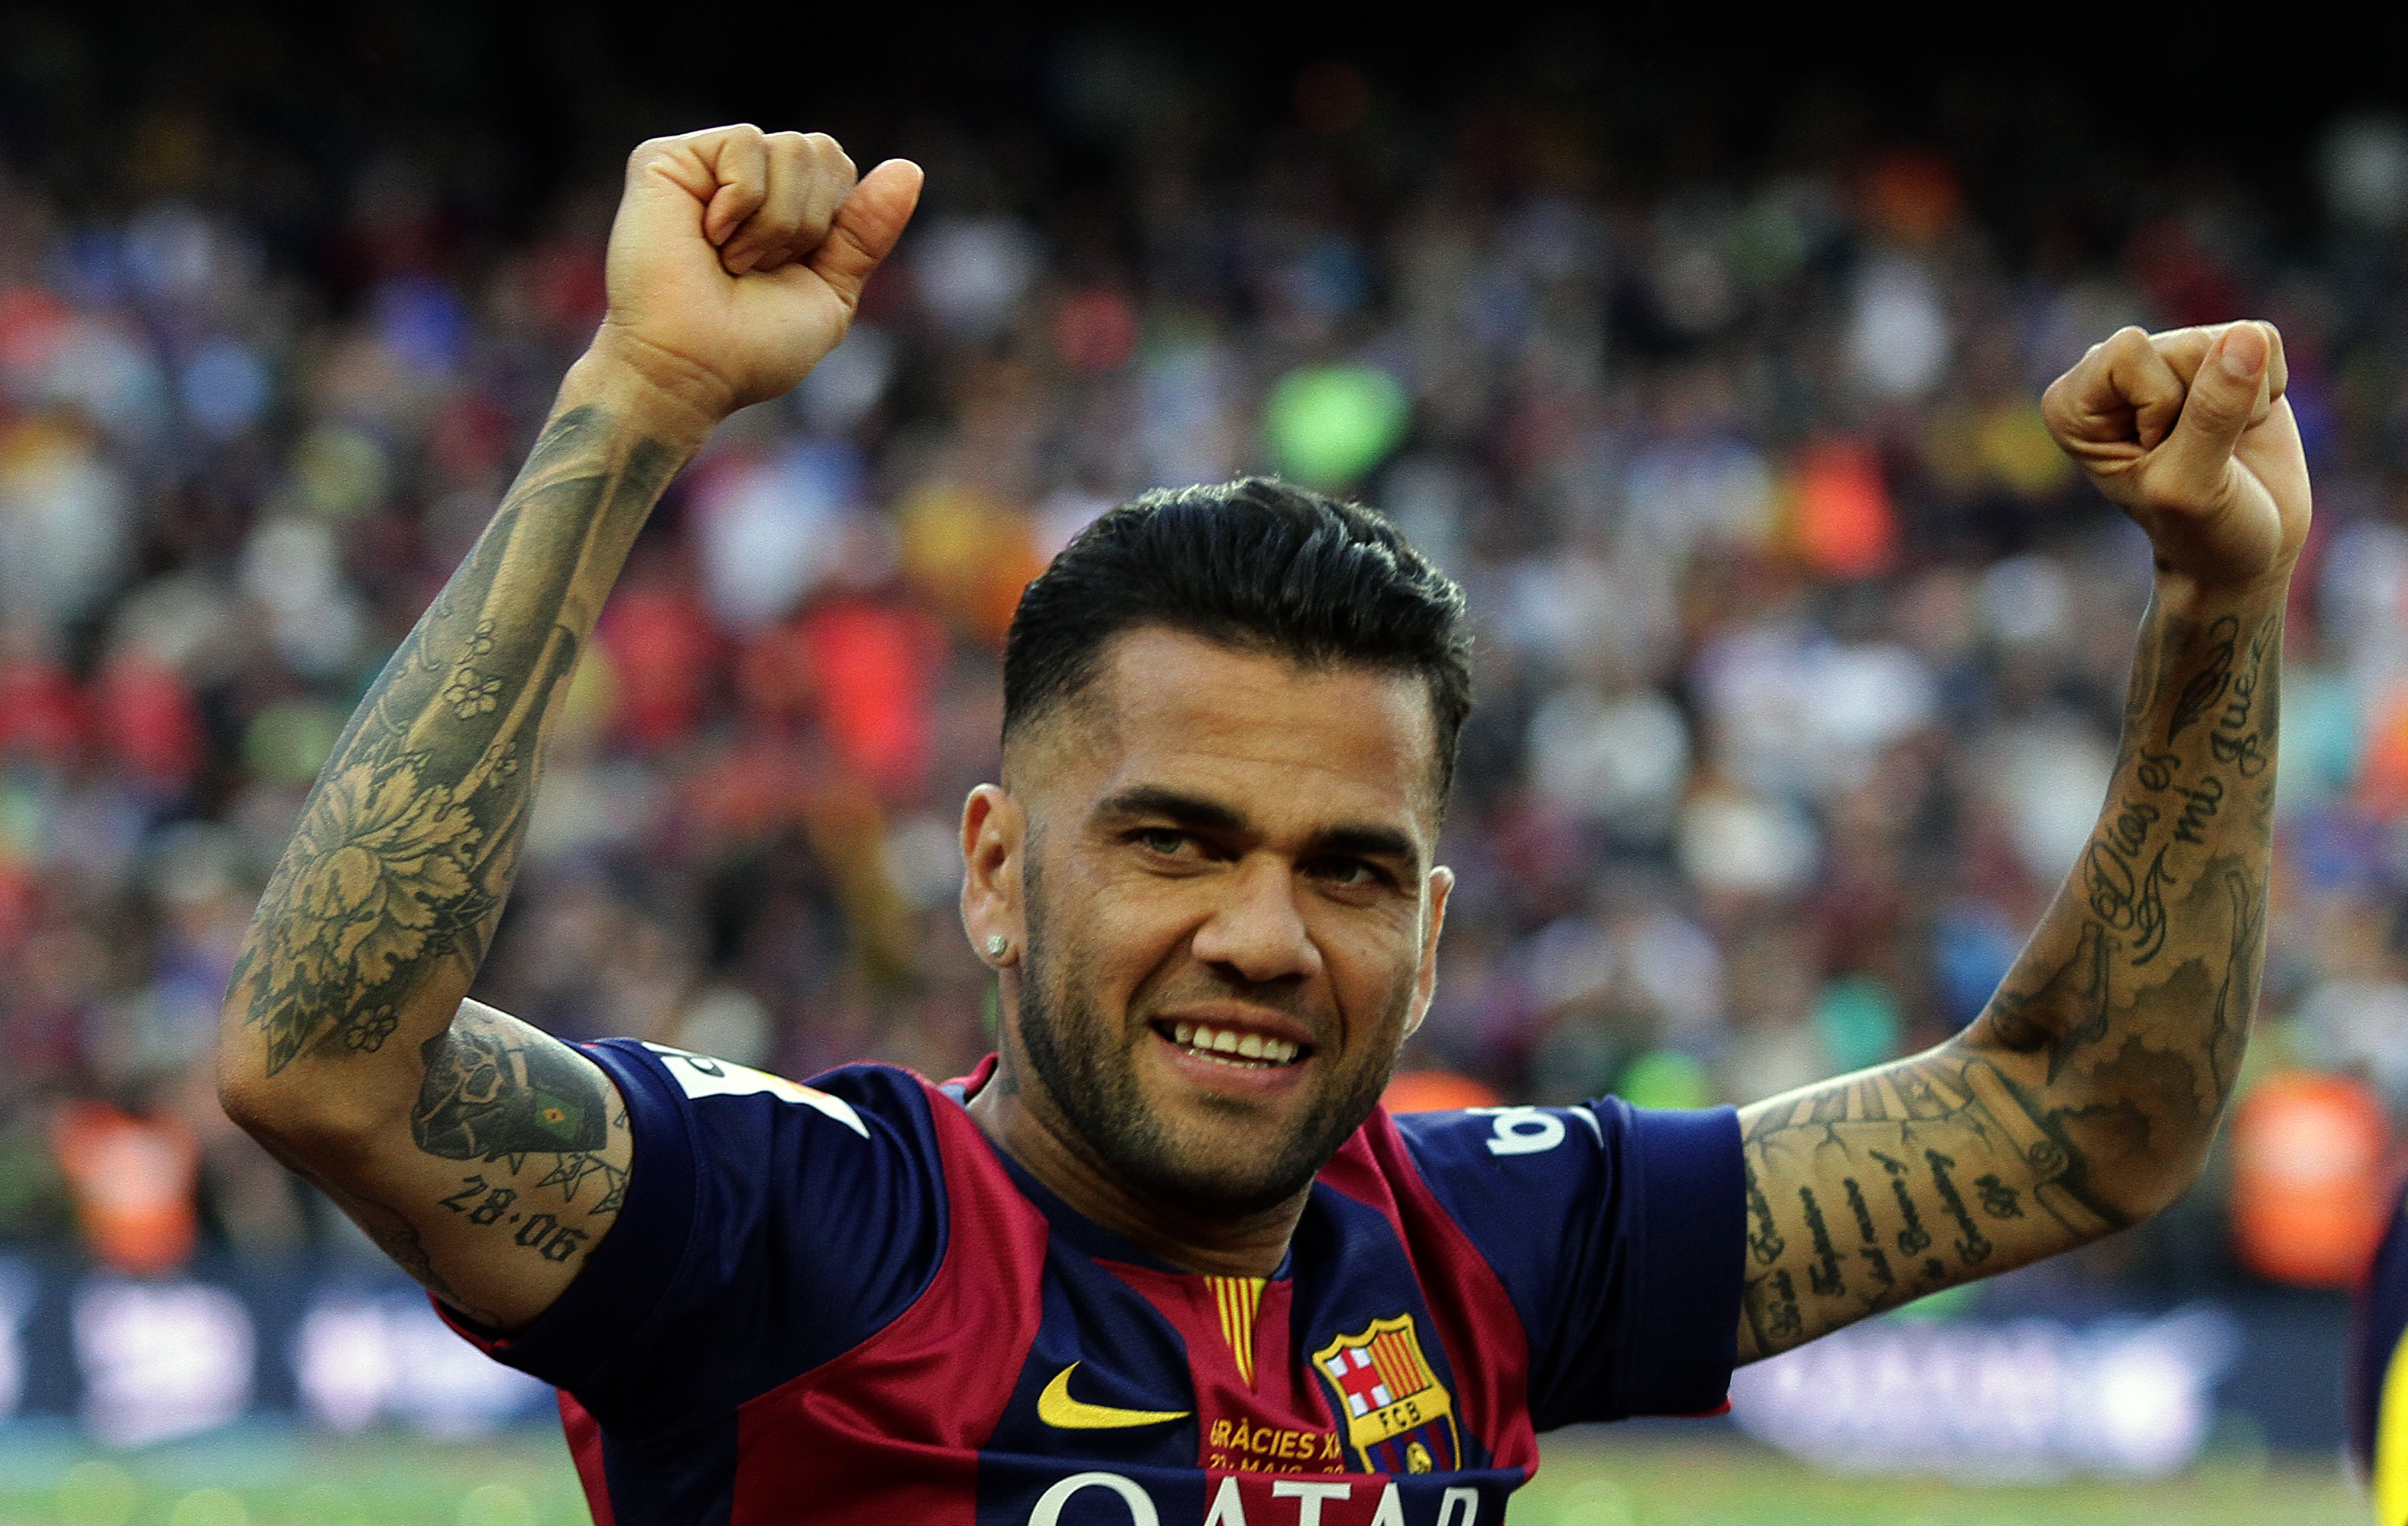 Dani Alves during the celebration for their title win